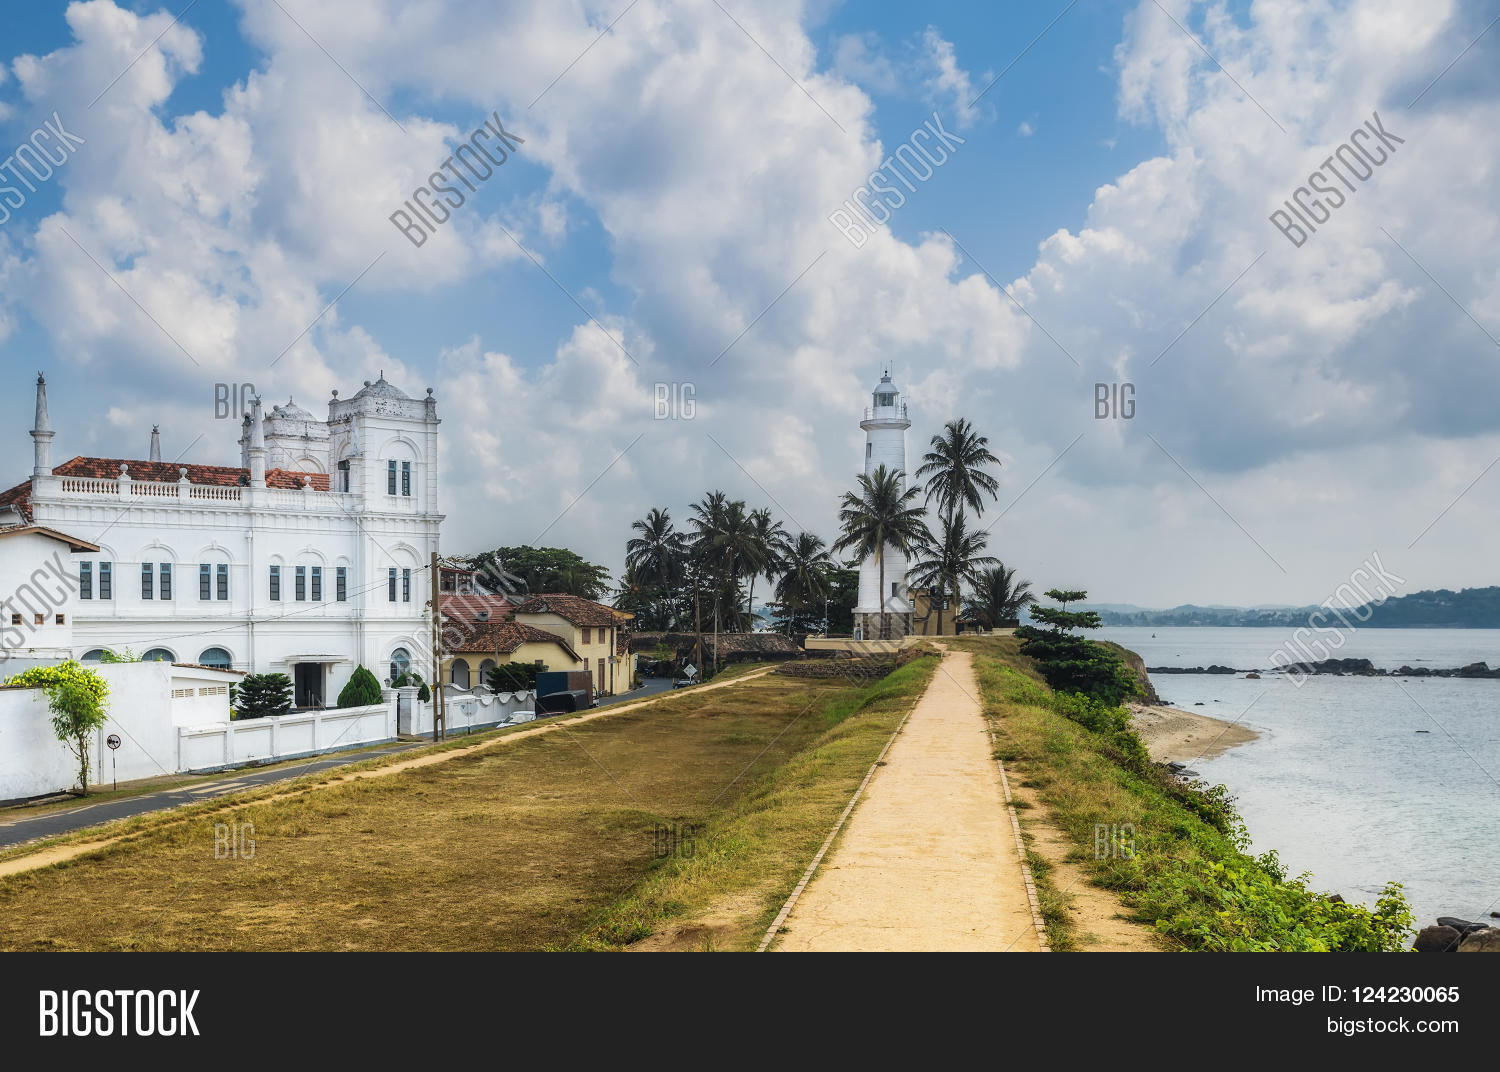 Galle Fort Sri Lanka Image Photo Free Trial Bigstock